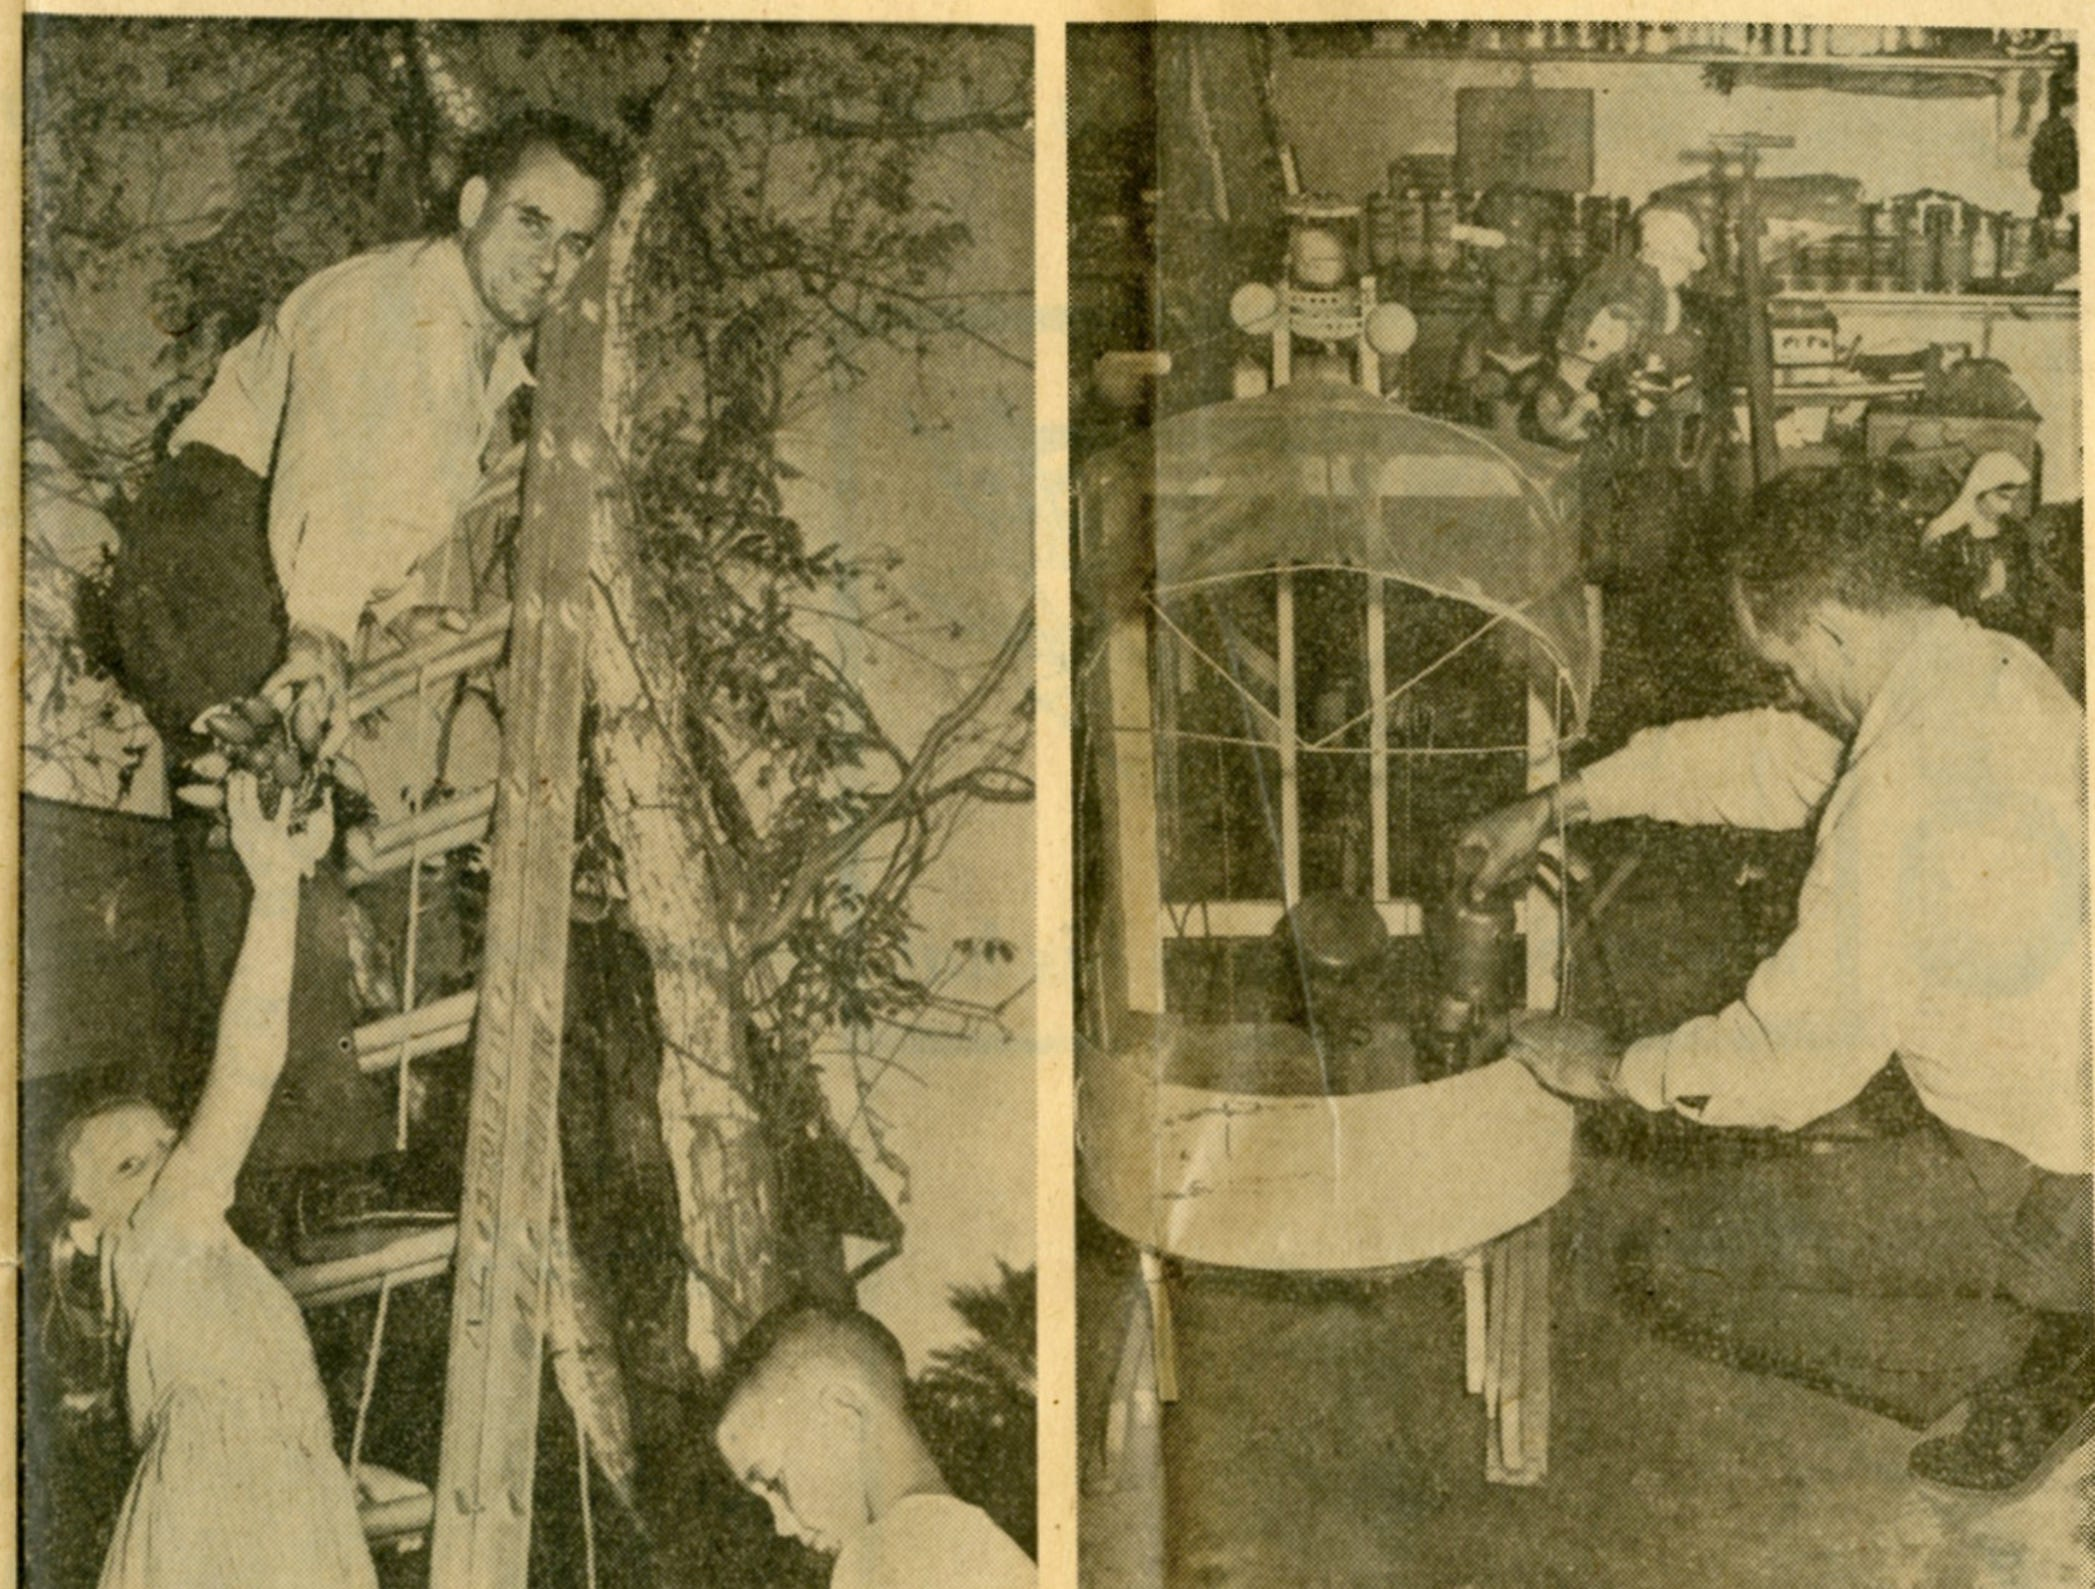 A article from the Corpus Christi Times on Dec. 16, 1964 showed Bill Aldridge hard at work setting up his house's Christmas decorations. He continued the tradition through 1985, but sold the decorations to a church in Premont in 1986 after having heart bypass surgery.